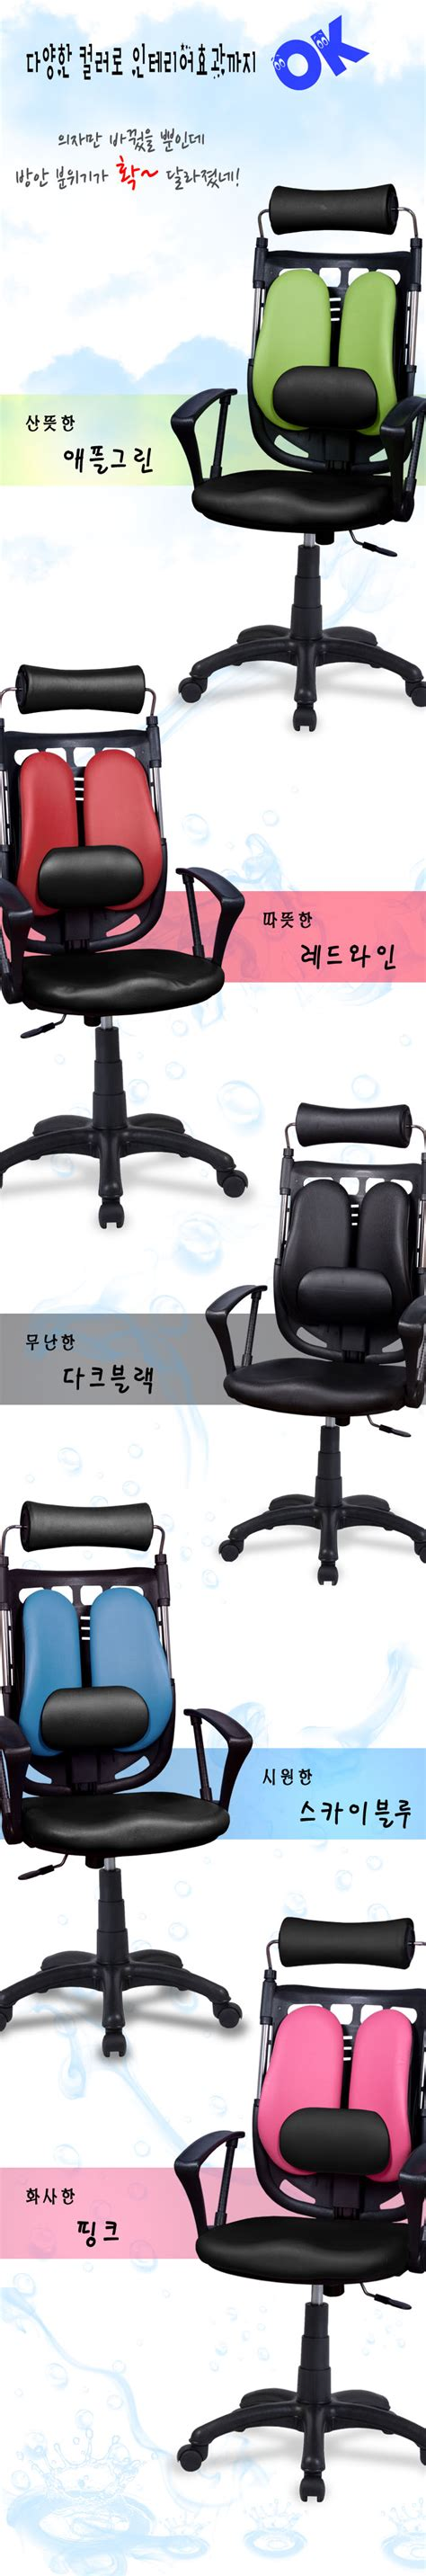 A Picture Of A Chair Http Www Chairfocus Co Kr